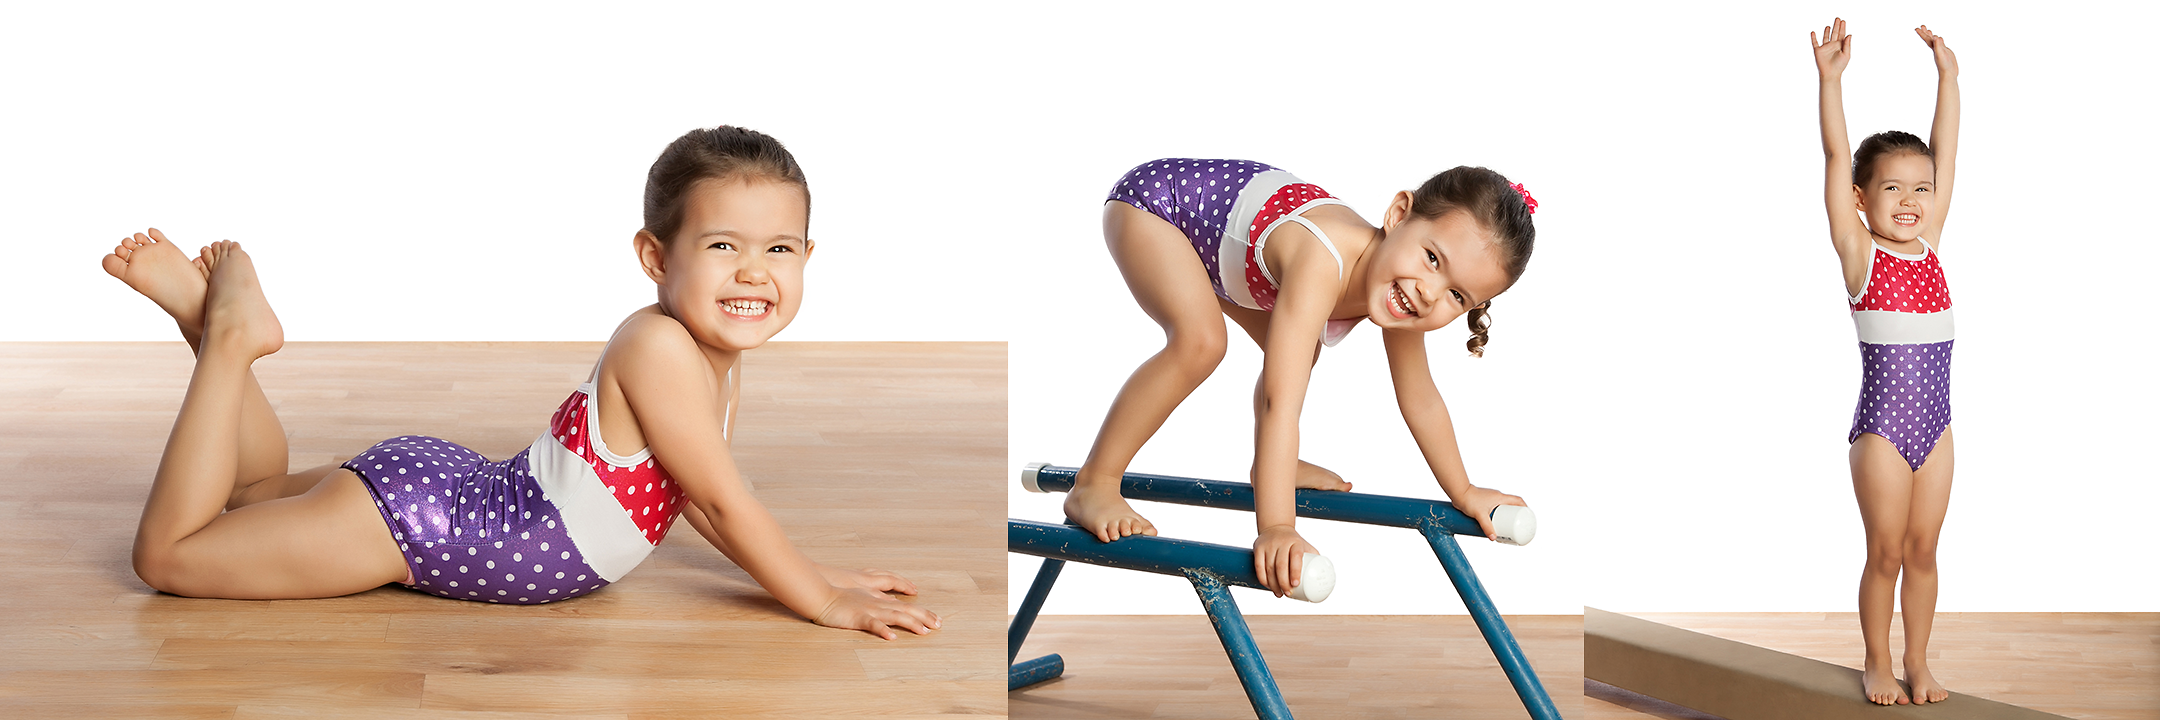 pre-school-gymnastics-photography-01